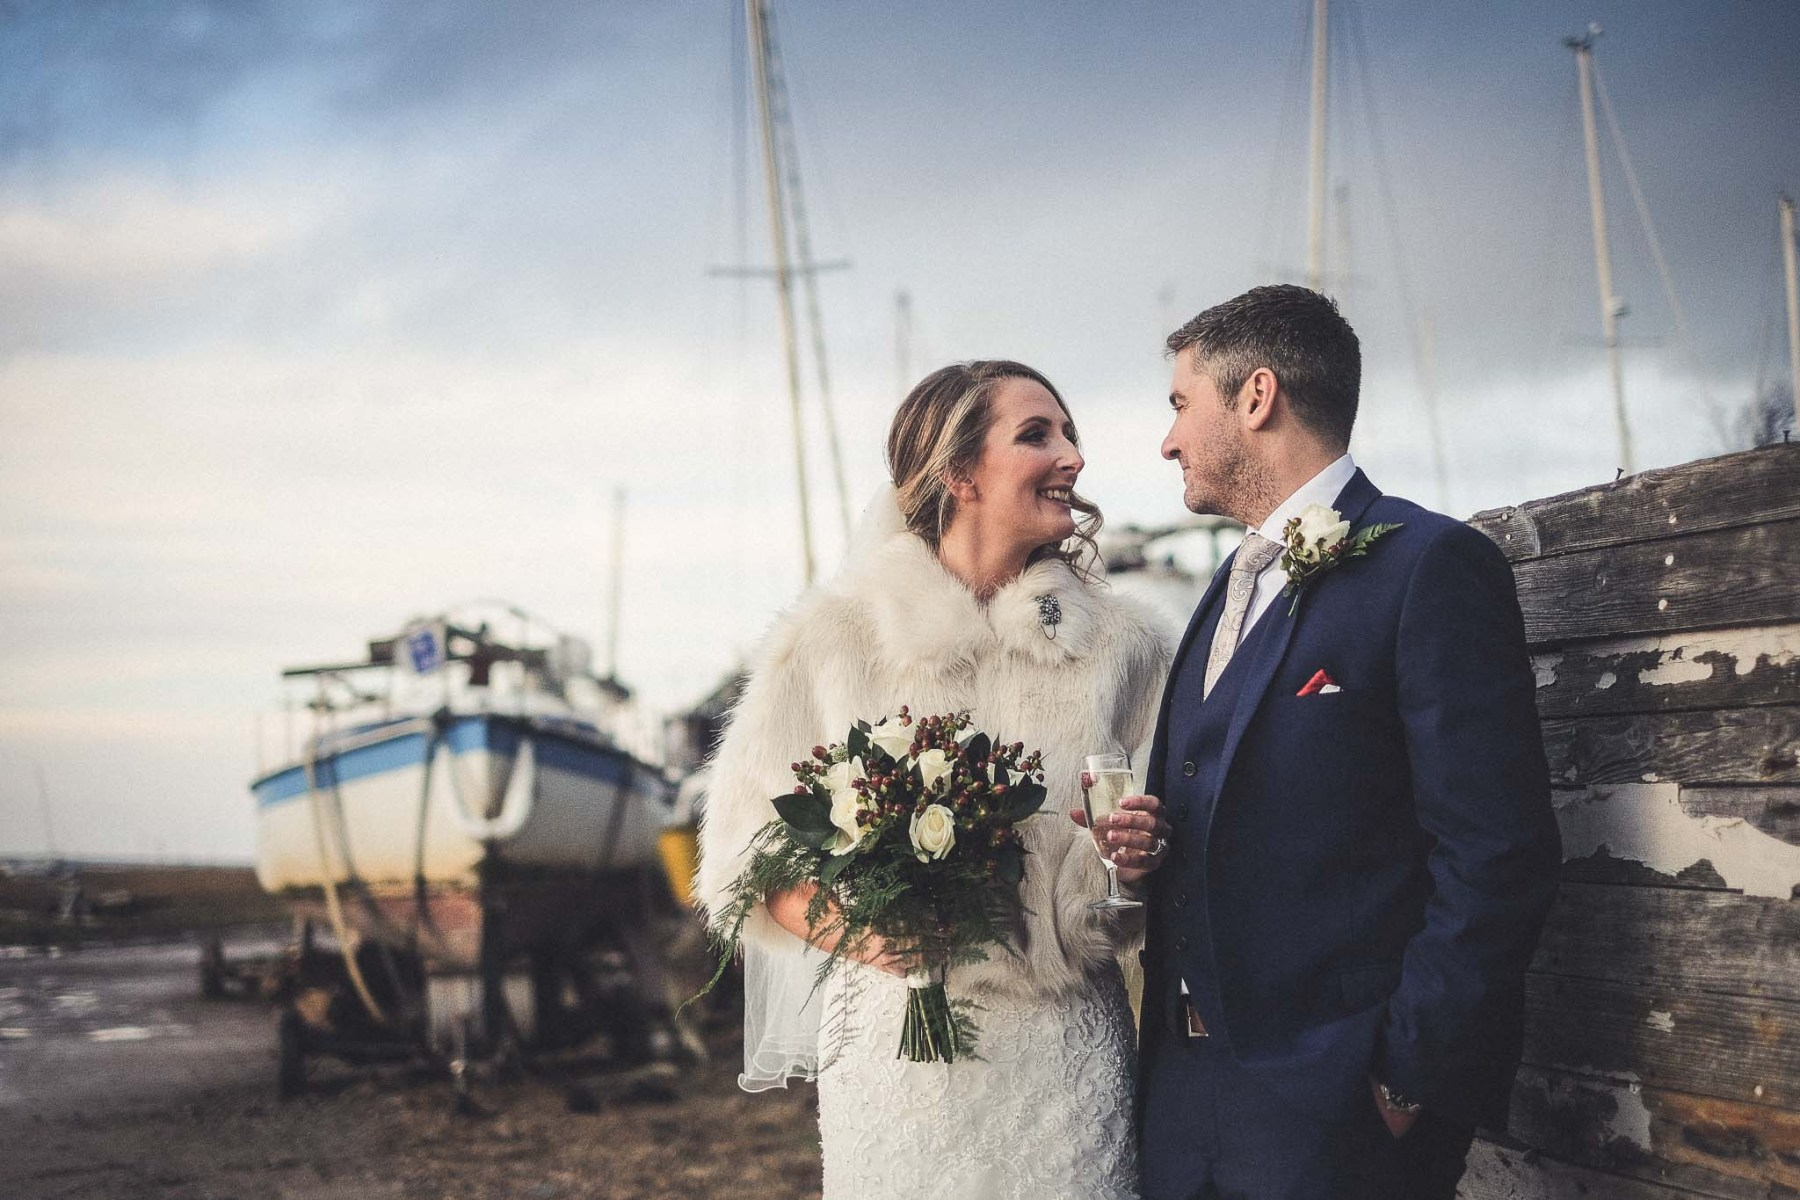 Wedding videography at Sheldrakes restaurant on the Wirral